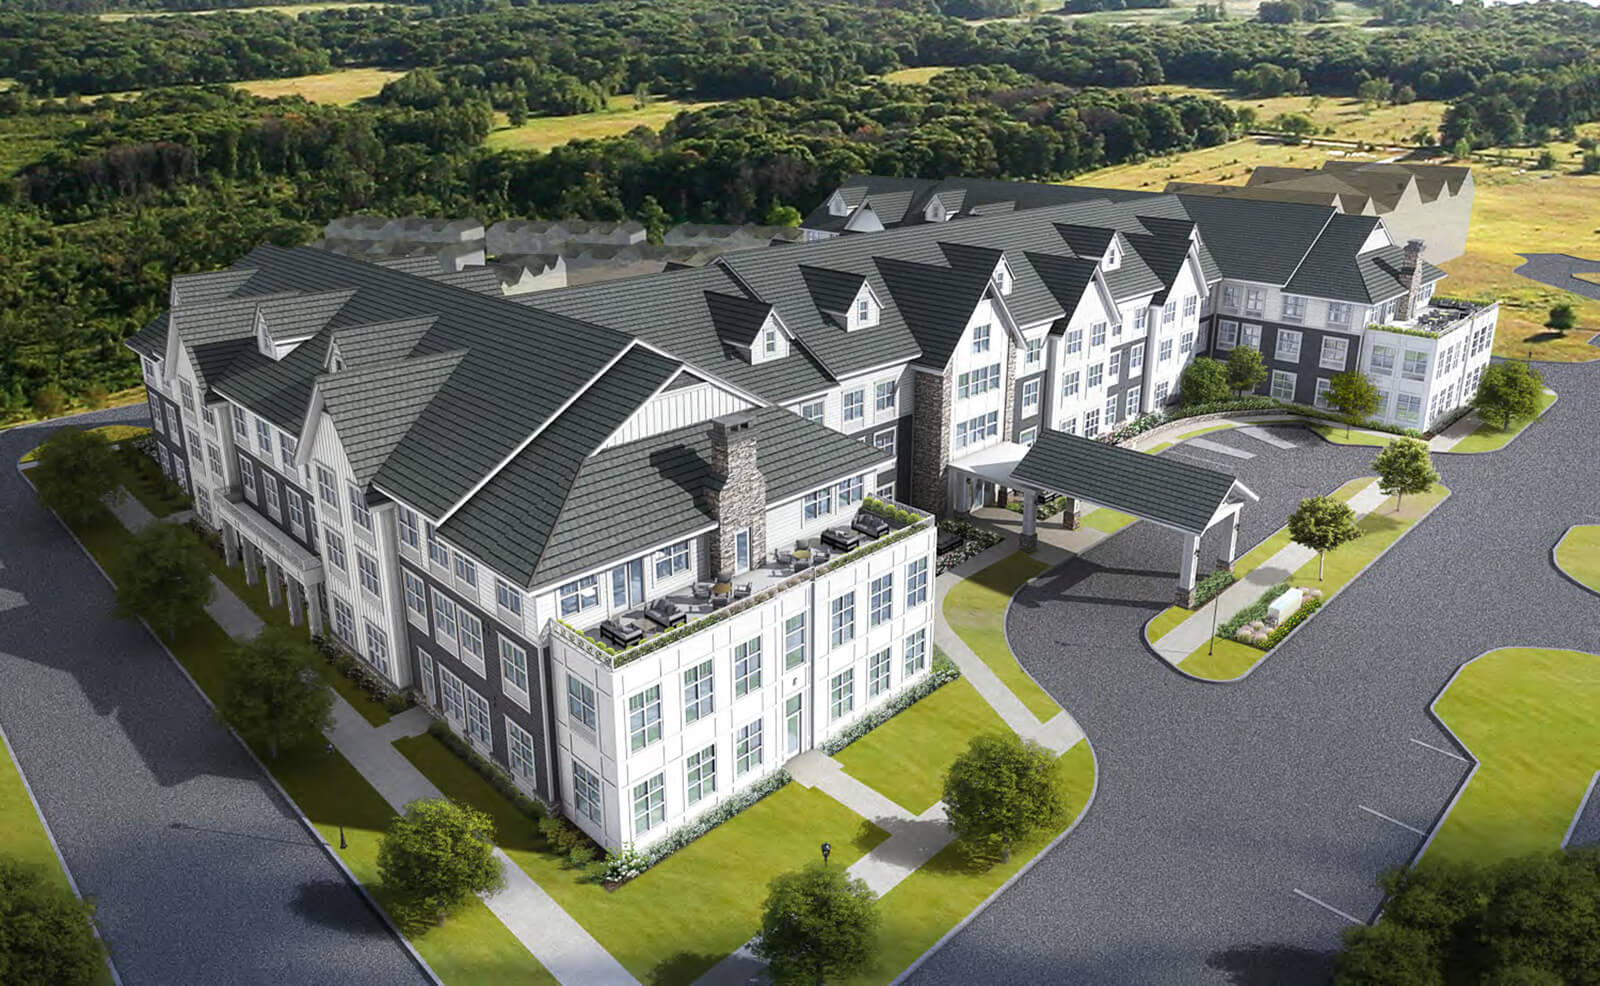 SENIOR LIVING OPTIONS AT SIMSBURY